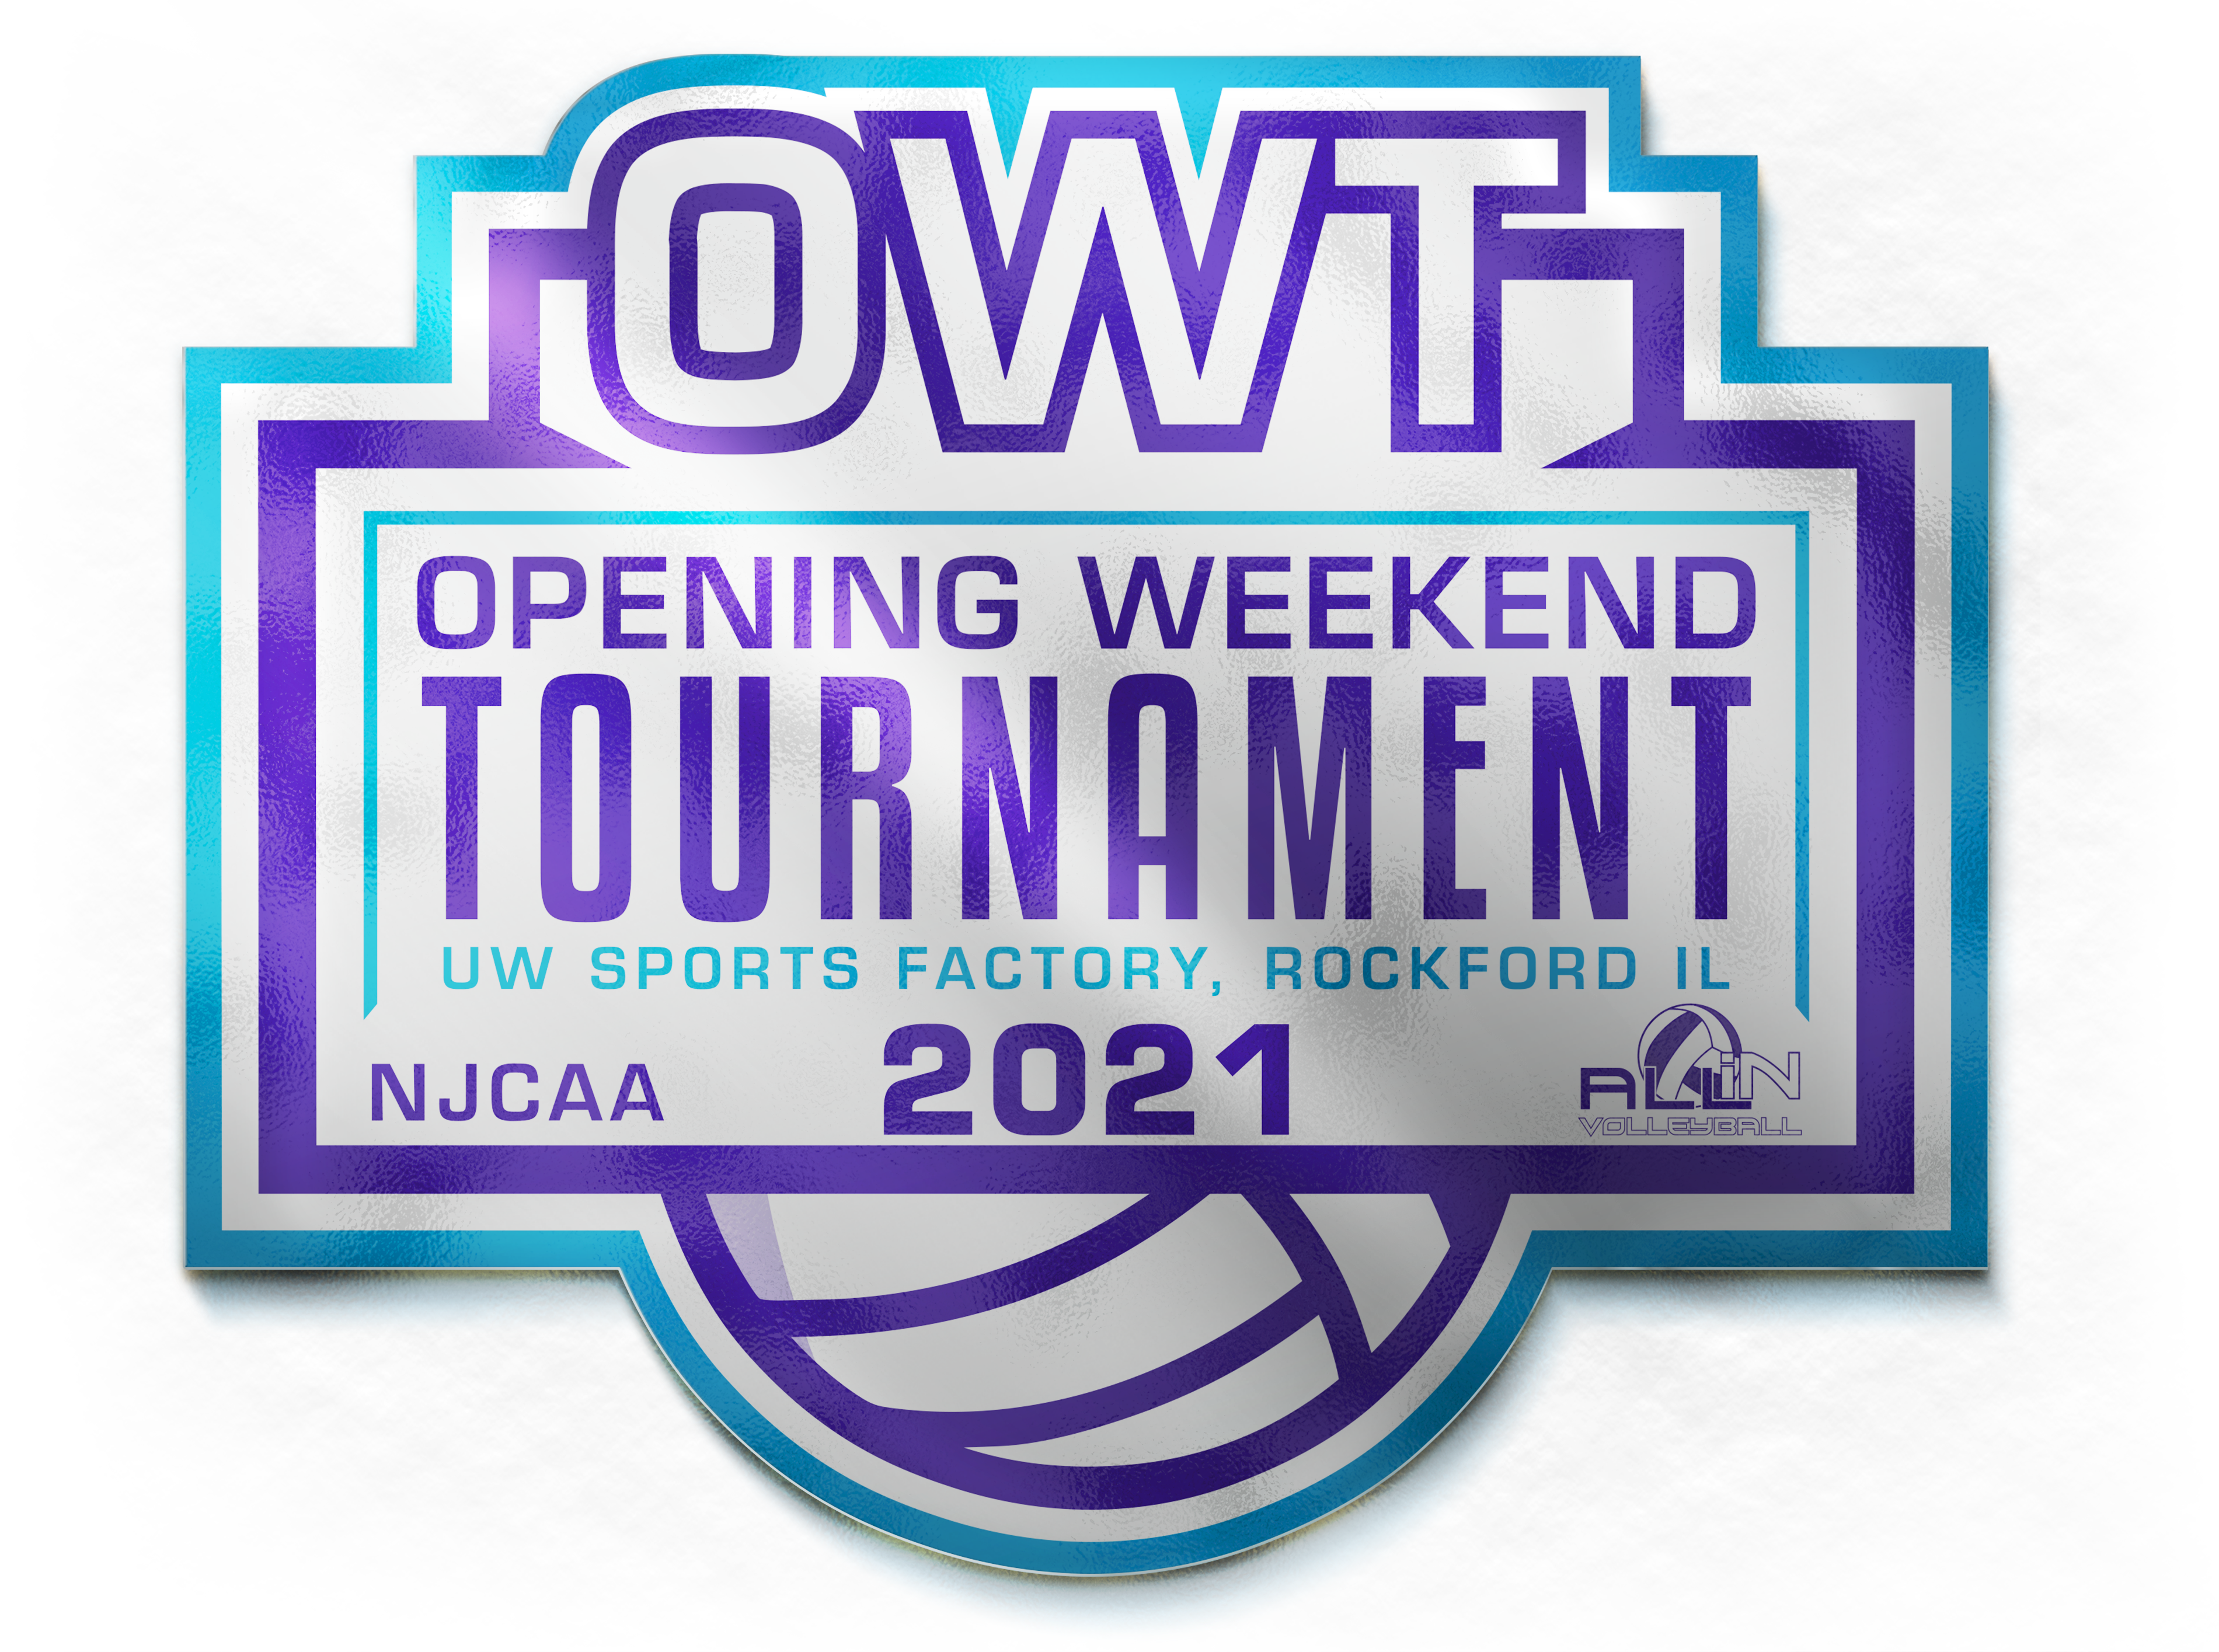 2021 Opening Weekend Tournament